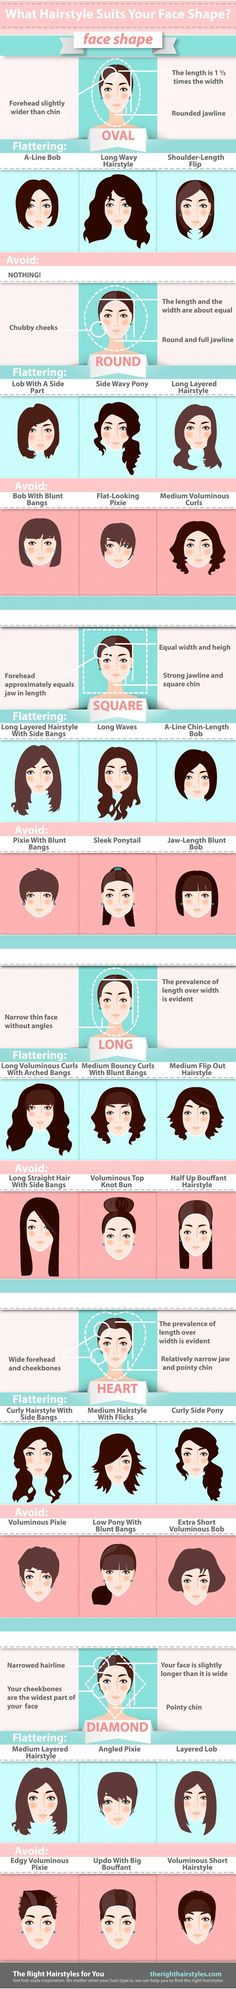 What Hairstyle Suits